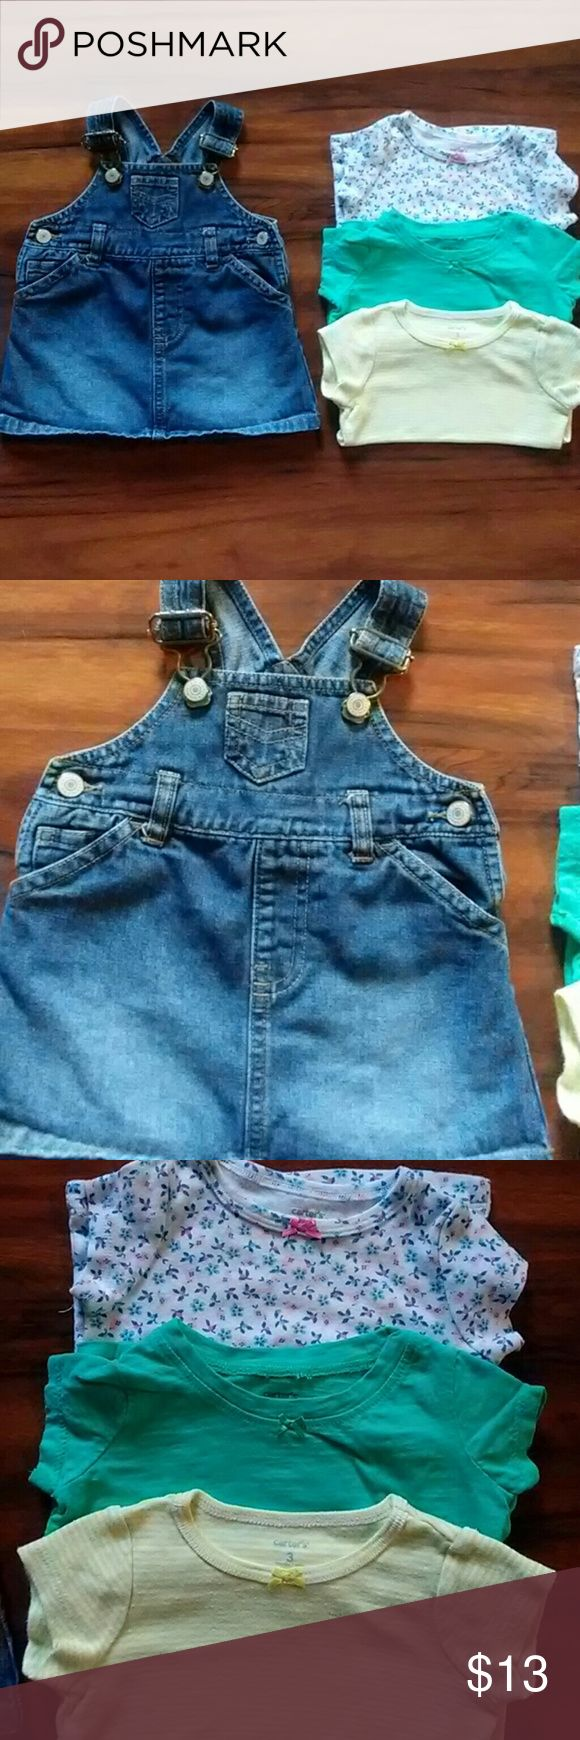 Jean Overall Dress & Tops Great condition. One of my favorites from my daughter's Summer pieces! Old Navy overalls and Carter's tops. Dresses Casual